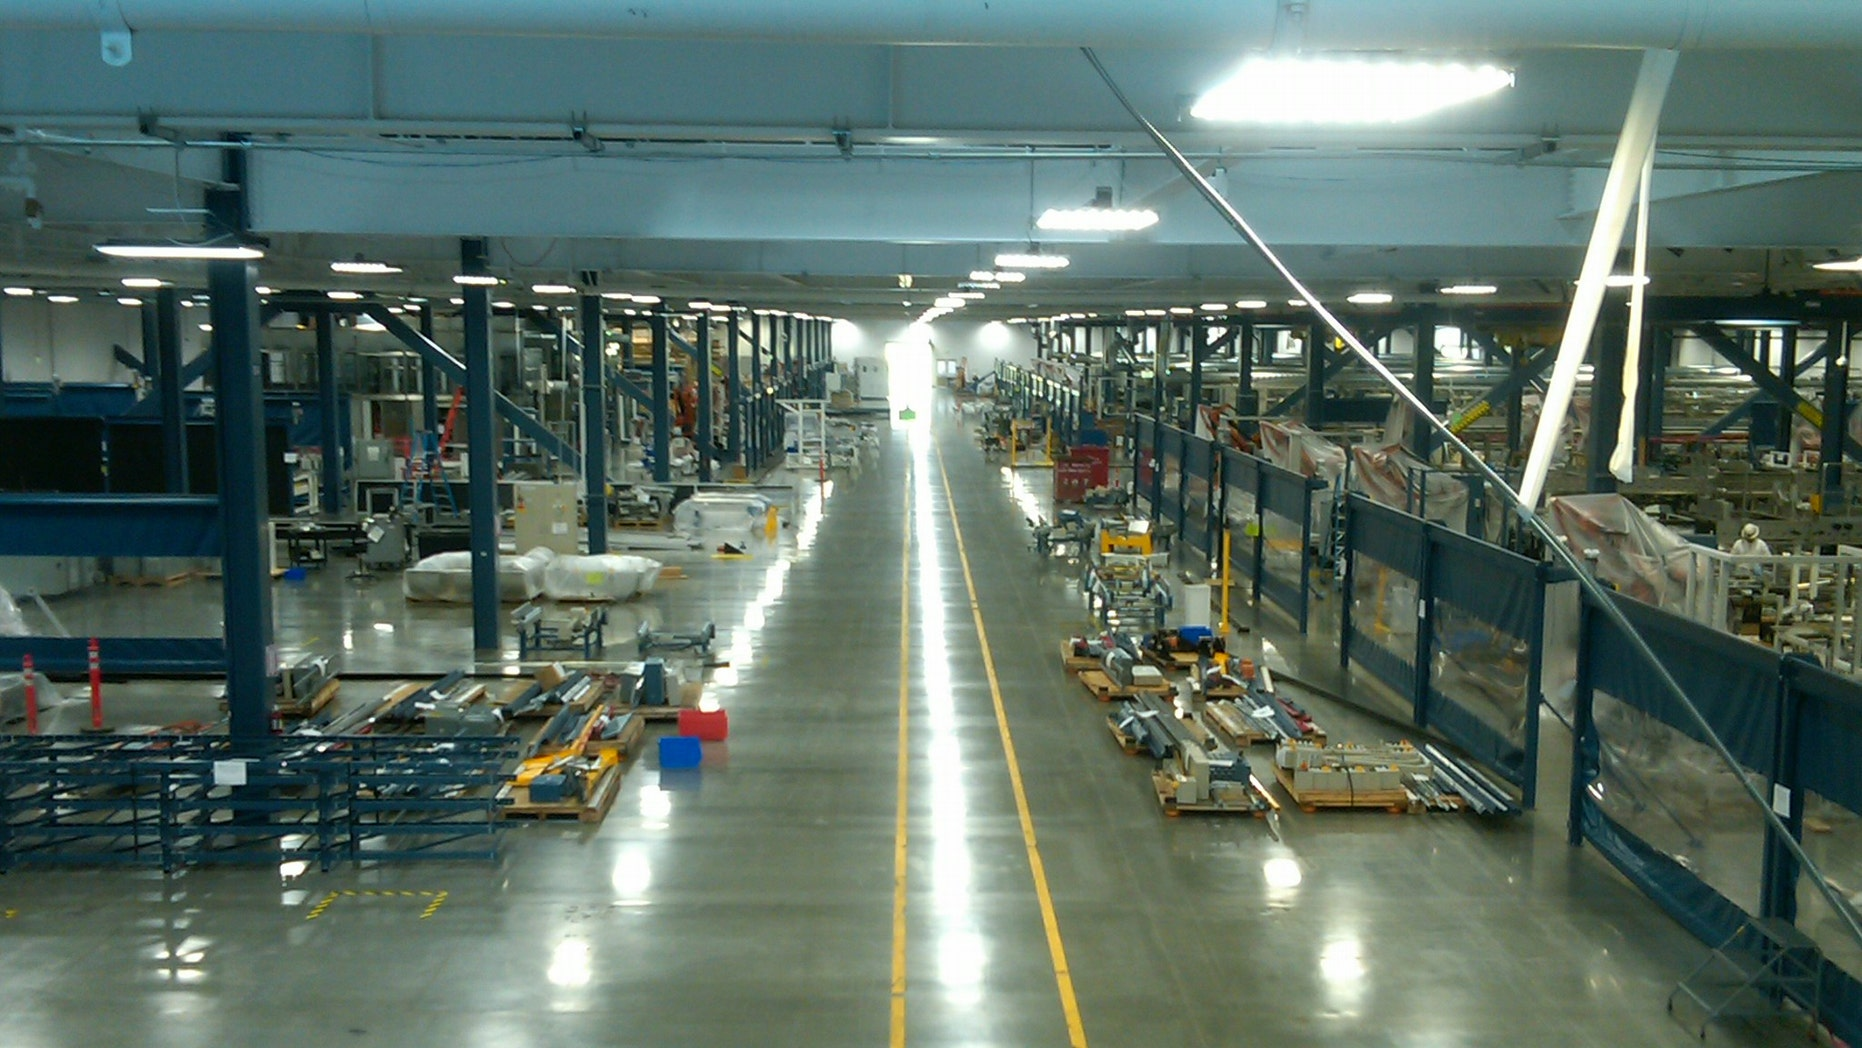 A view down the length of the massive Solyndra production floor, which will was auctioned off with the rest of the defunct company.